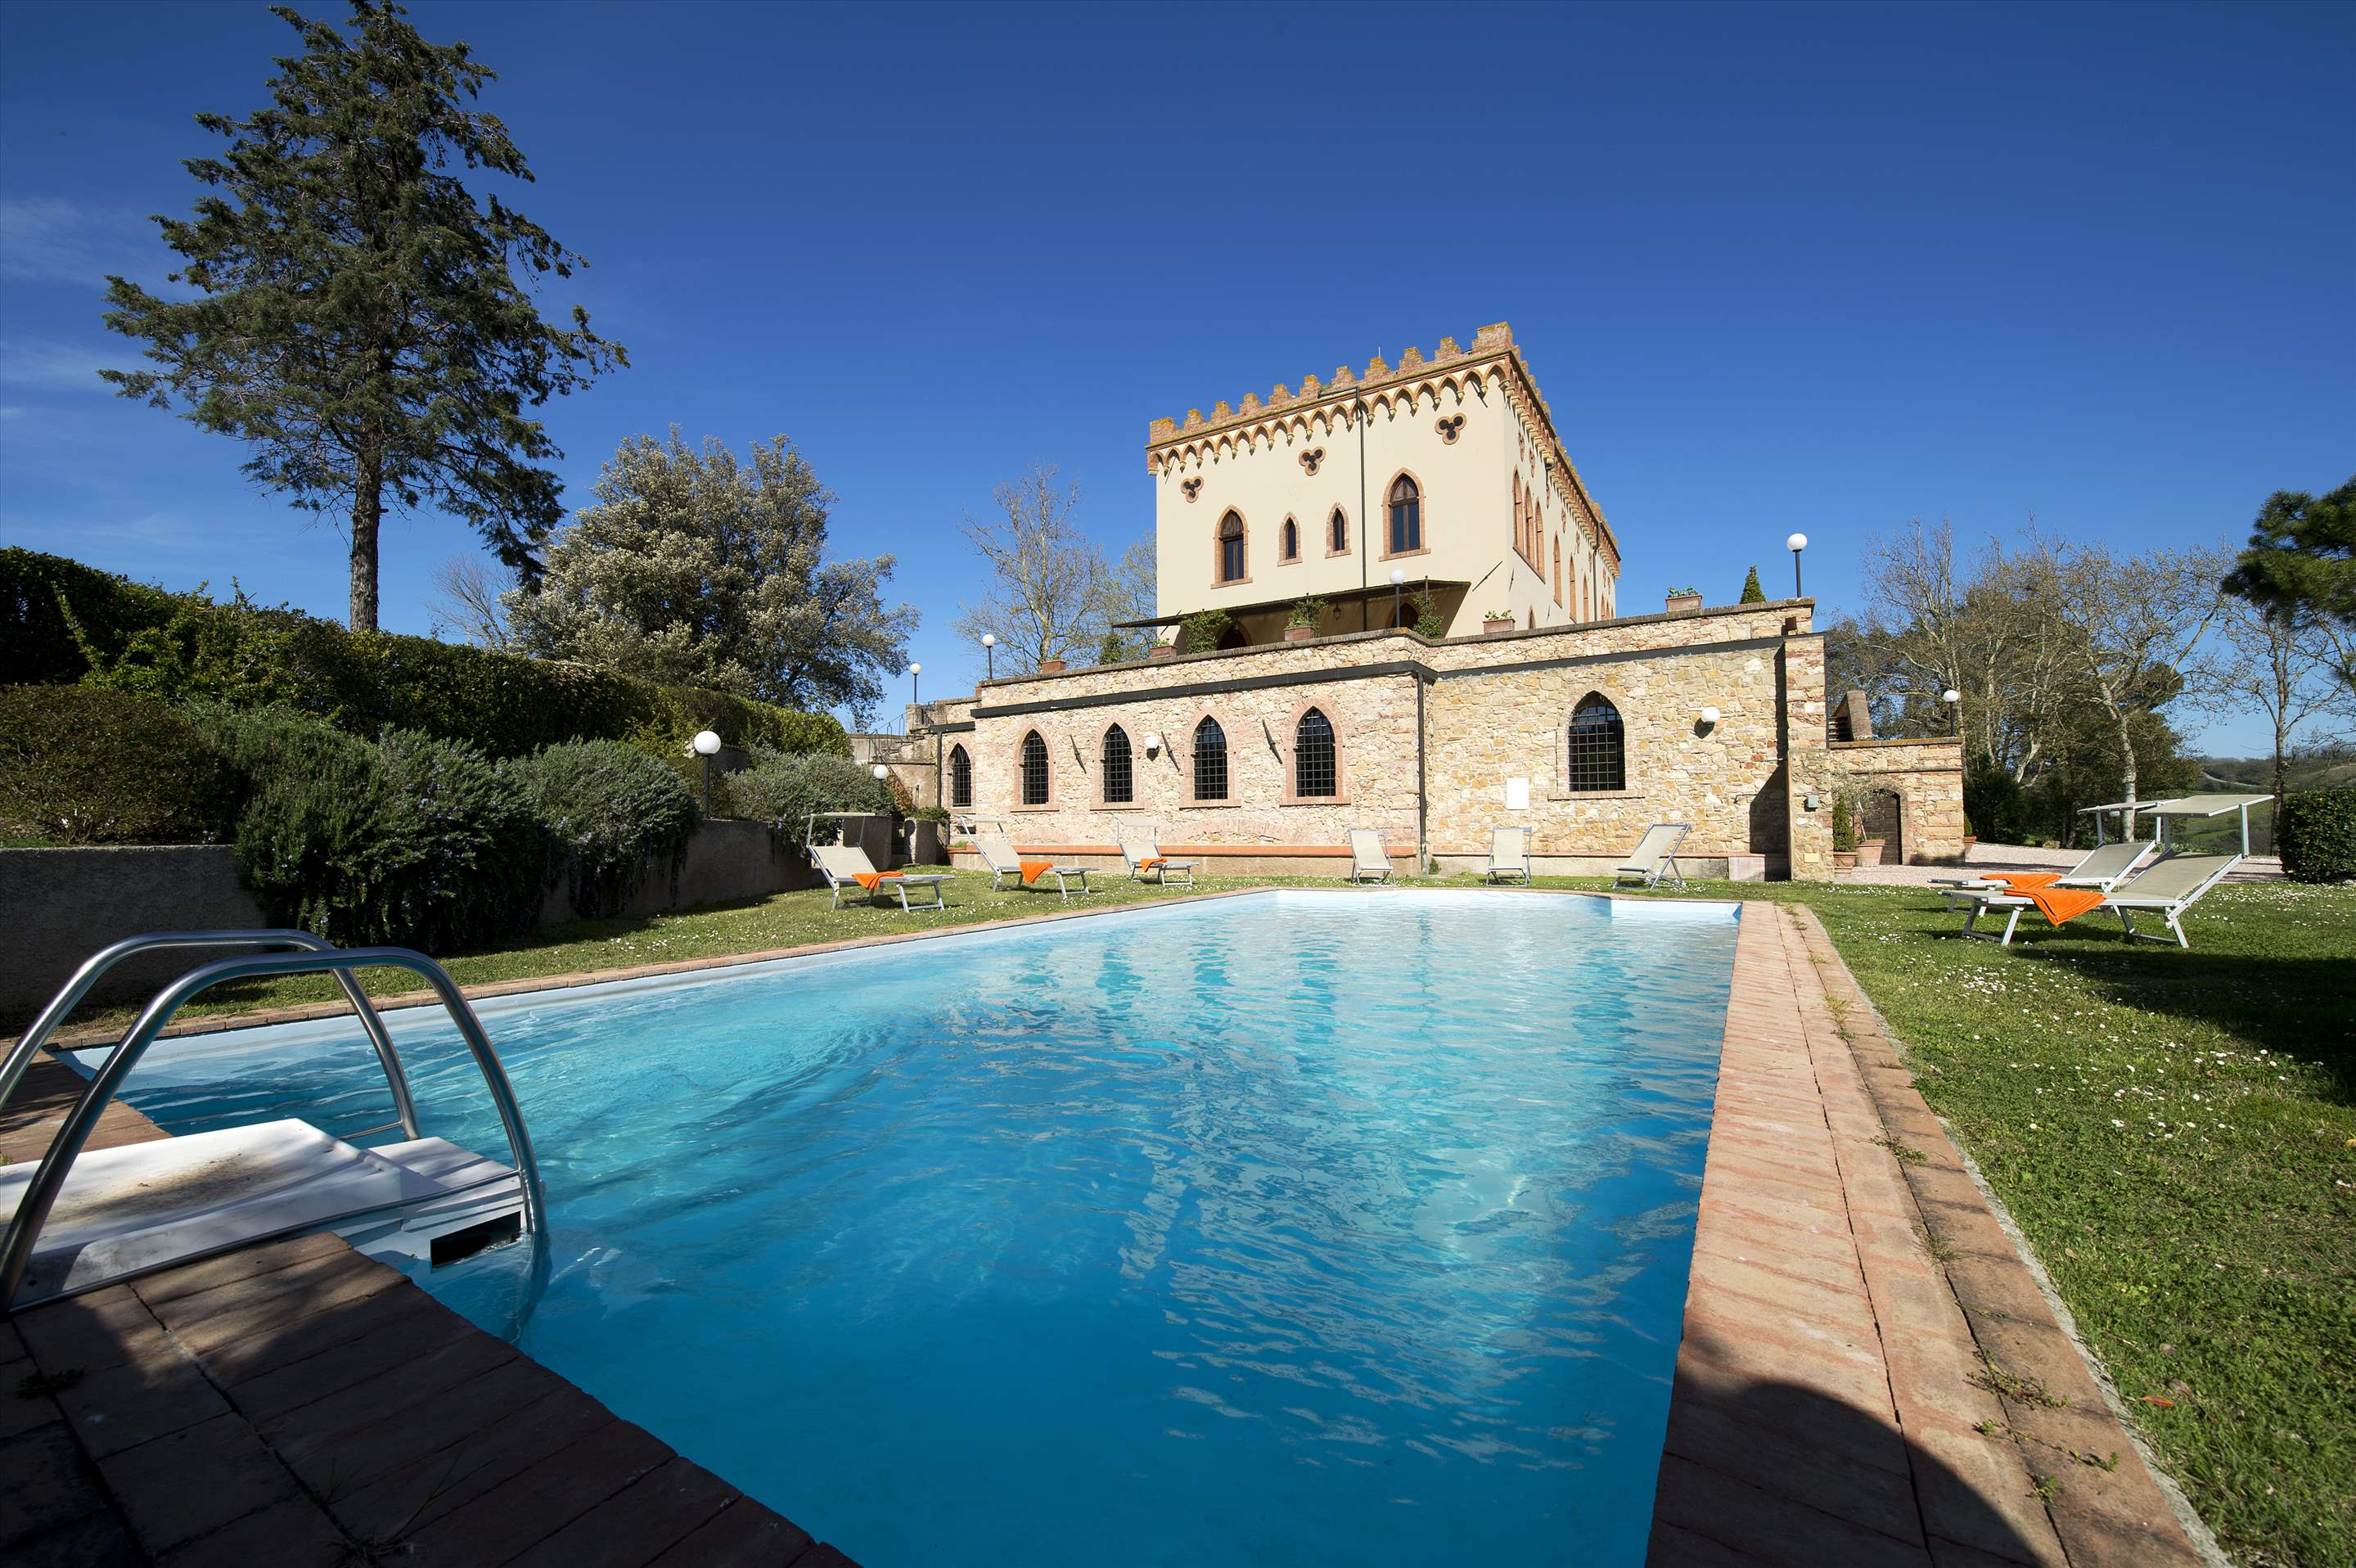 Villa Di Archi & Dependance, 9 bedroom villa in Tuscany Coast, Tuscany Photo #1